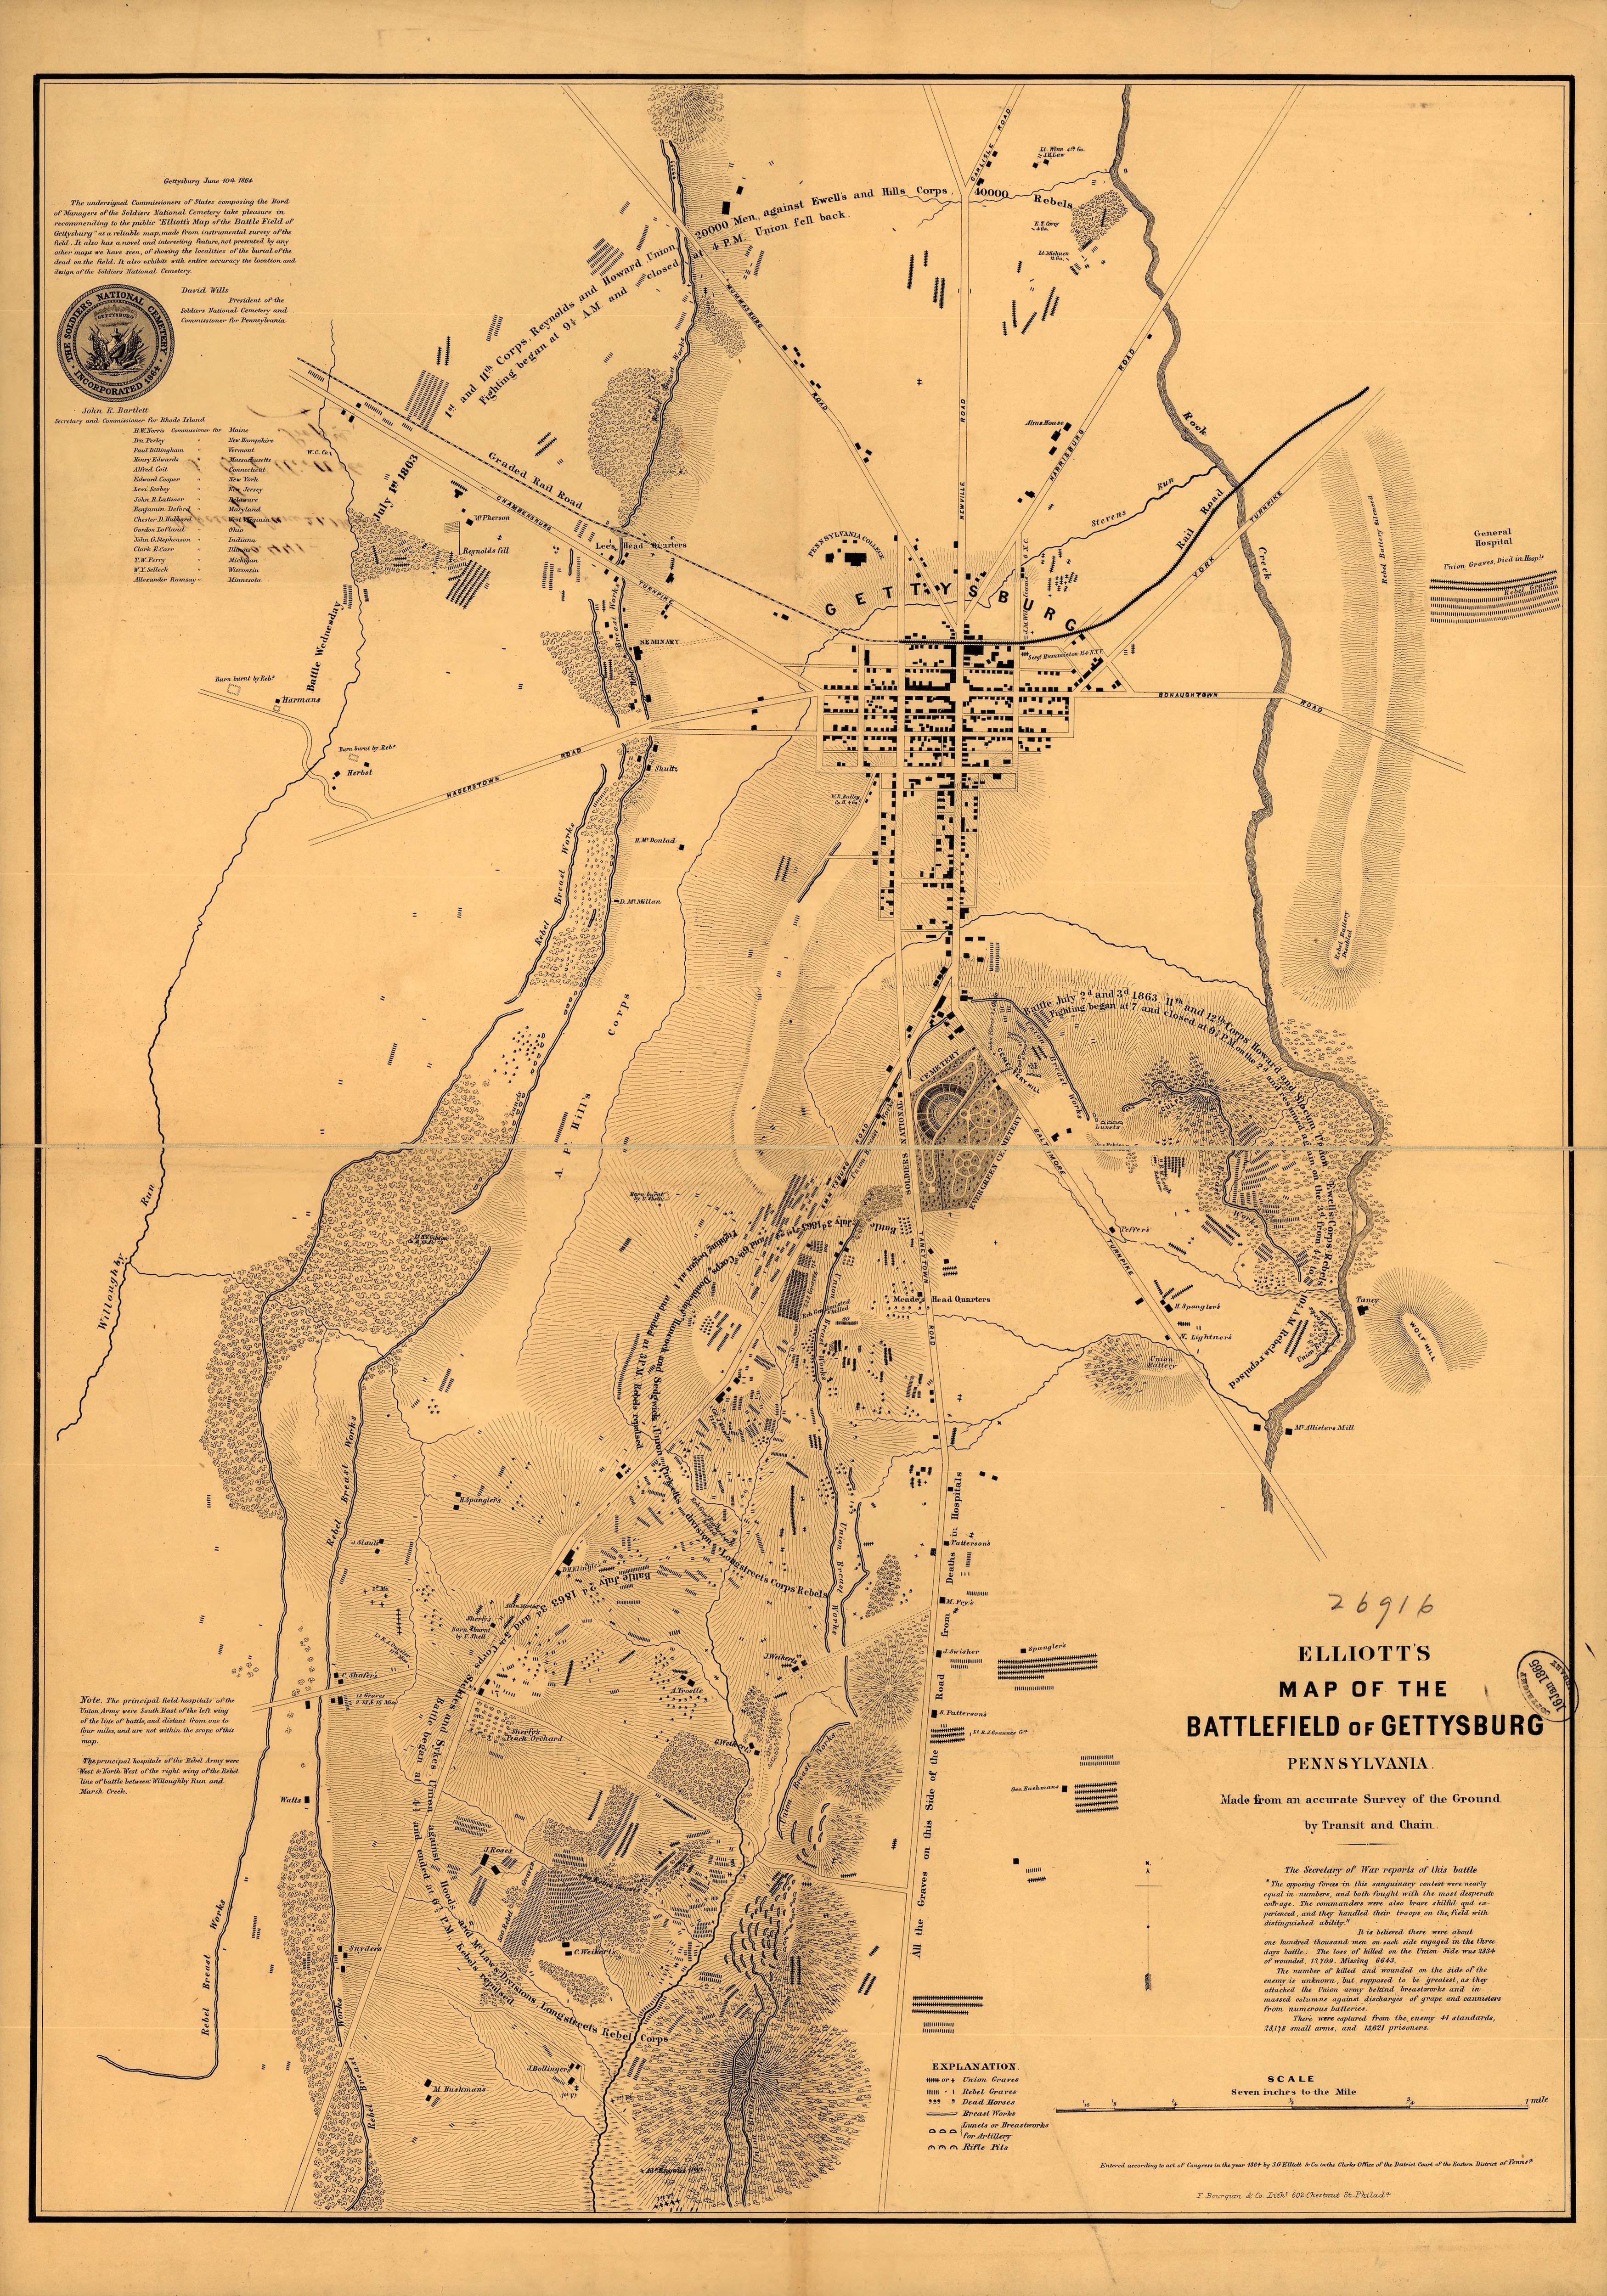 A map of military action, graves, and local landmarks during ... Gettysburg Battle Map on gettysburg battlefield, gettysburg reenactment, gettysburg pa battlefield map, gettysburg chambersburg pike, american civil war, second battle of bull run, battle of shiloh, gettysburg war map, battle of antietam, gettysburg battlegrounds map, gettysburg soldiers, gettysburg map day 3, battle of chickamauga, robert e. lee, day-one gettysburg map, battle of fredericksburg, pickett's charge map, battle of chancellorsville, gettysburg pickett's charge, gettysburg on map, stonewall jackson, gettysburg pennsylvania map, first battle of bull run, bleeding kansas, george b. mcclellan, gettysburg college map, gettysburg artillery map, george meade, gettysburg before and after, united confederate states of america map, civil wars majors battles map, battle of vicksburg, gettysburg first day, gettysburg map day 2, emancipation proclamation, battle of fort sumter, confederate states of america, gettysburg day 2 summary, william tecumseh sherman,